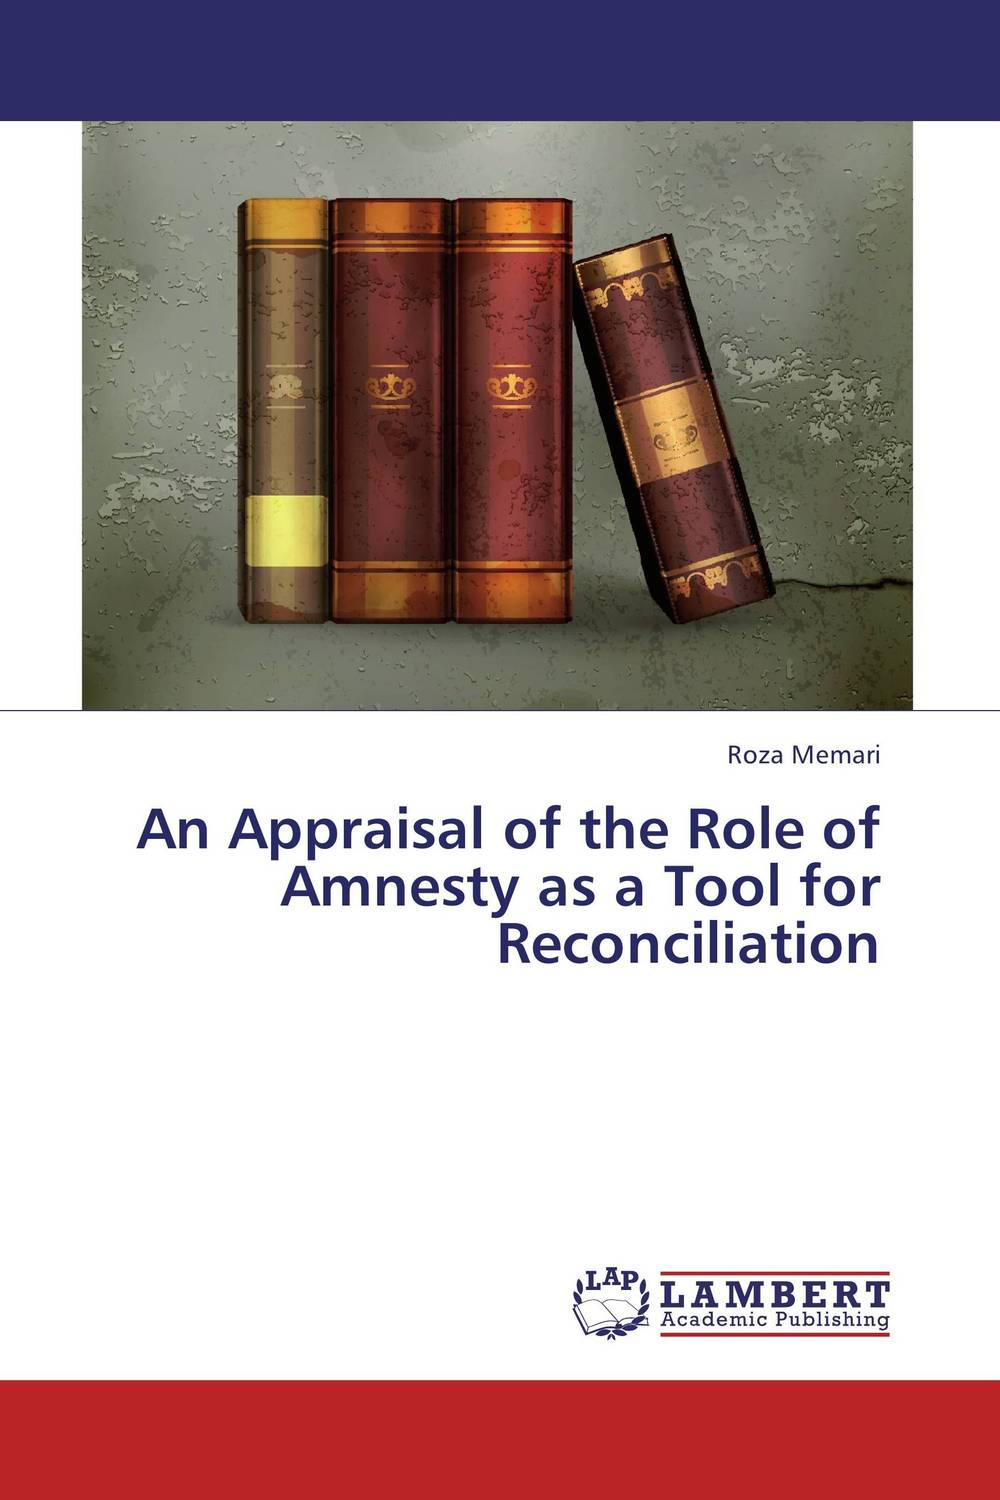 An Appraisal of the Role of Amnesty as a Tool for Reconciliation a role of tec a non receptor tyrosine kinase as apoptotic regulator